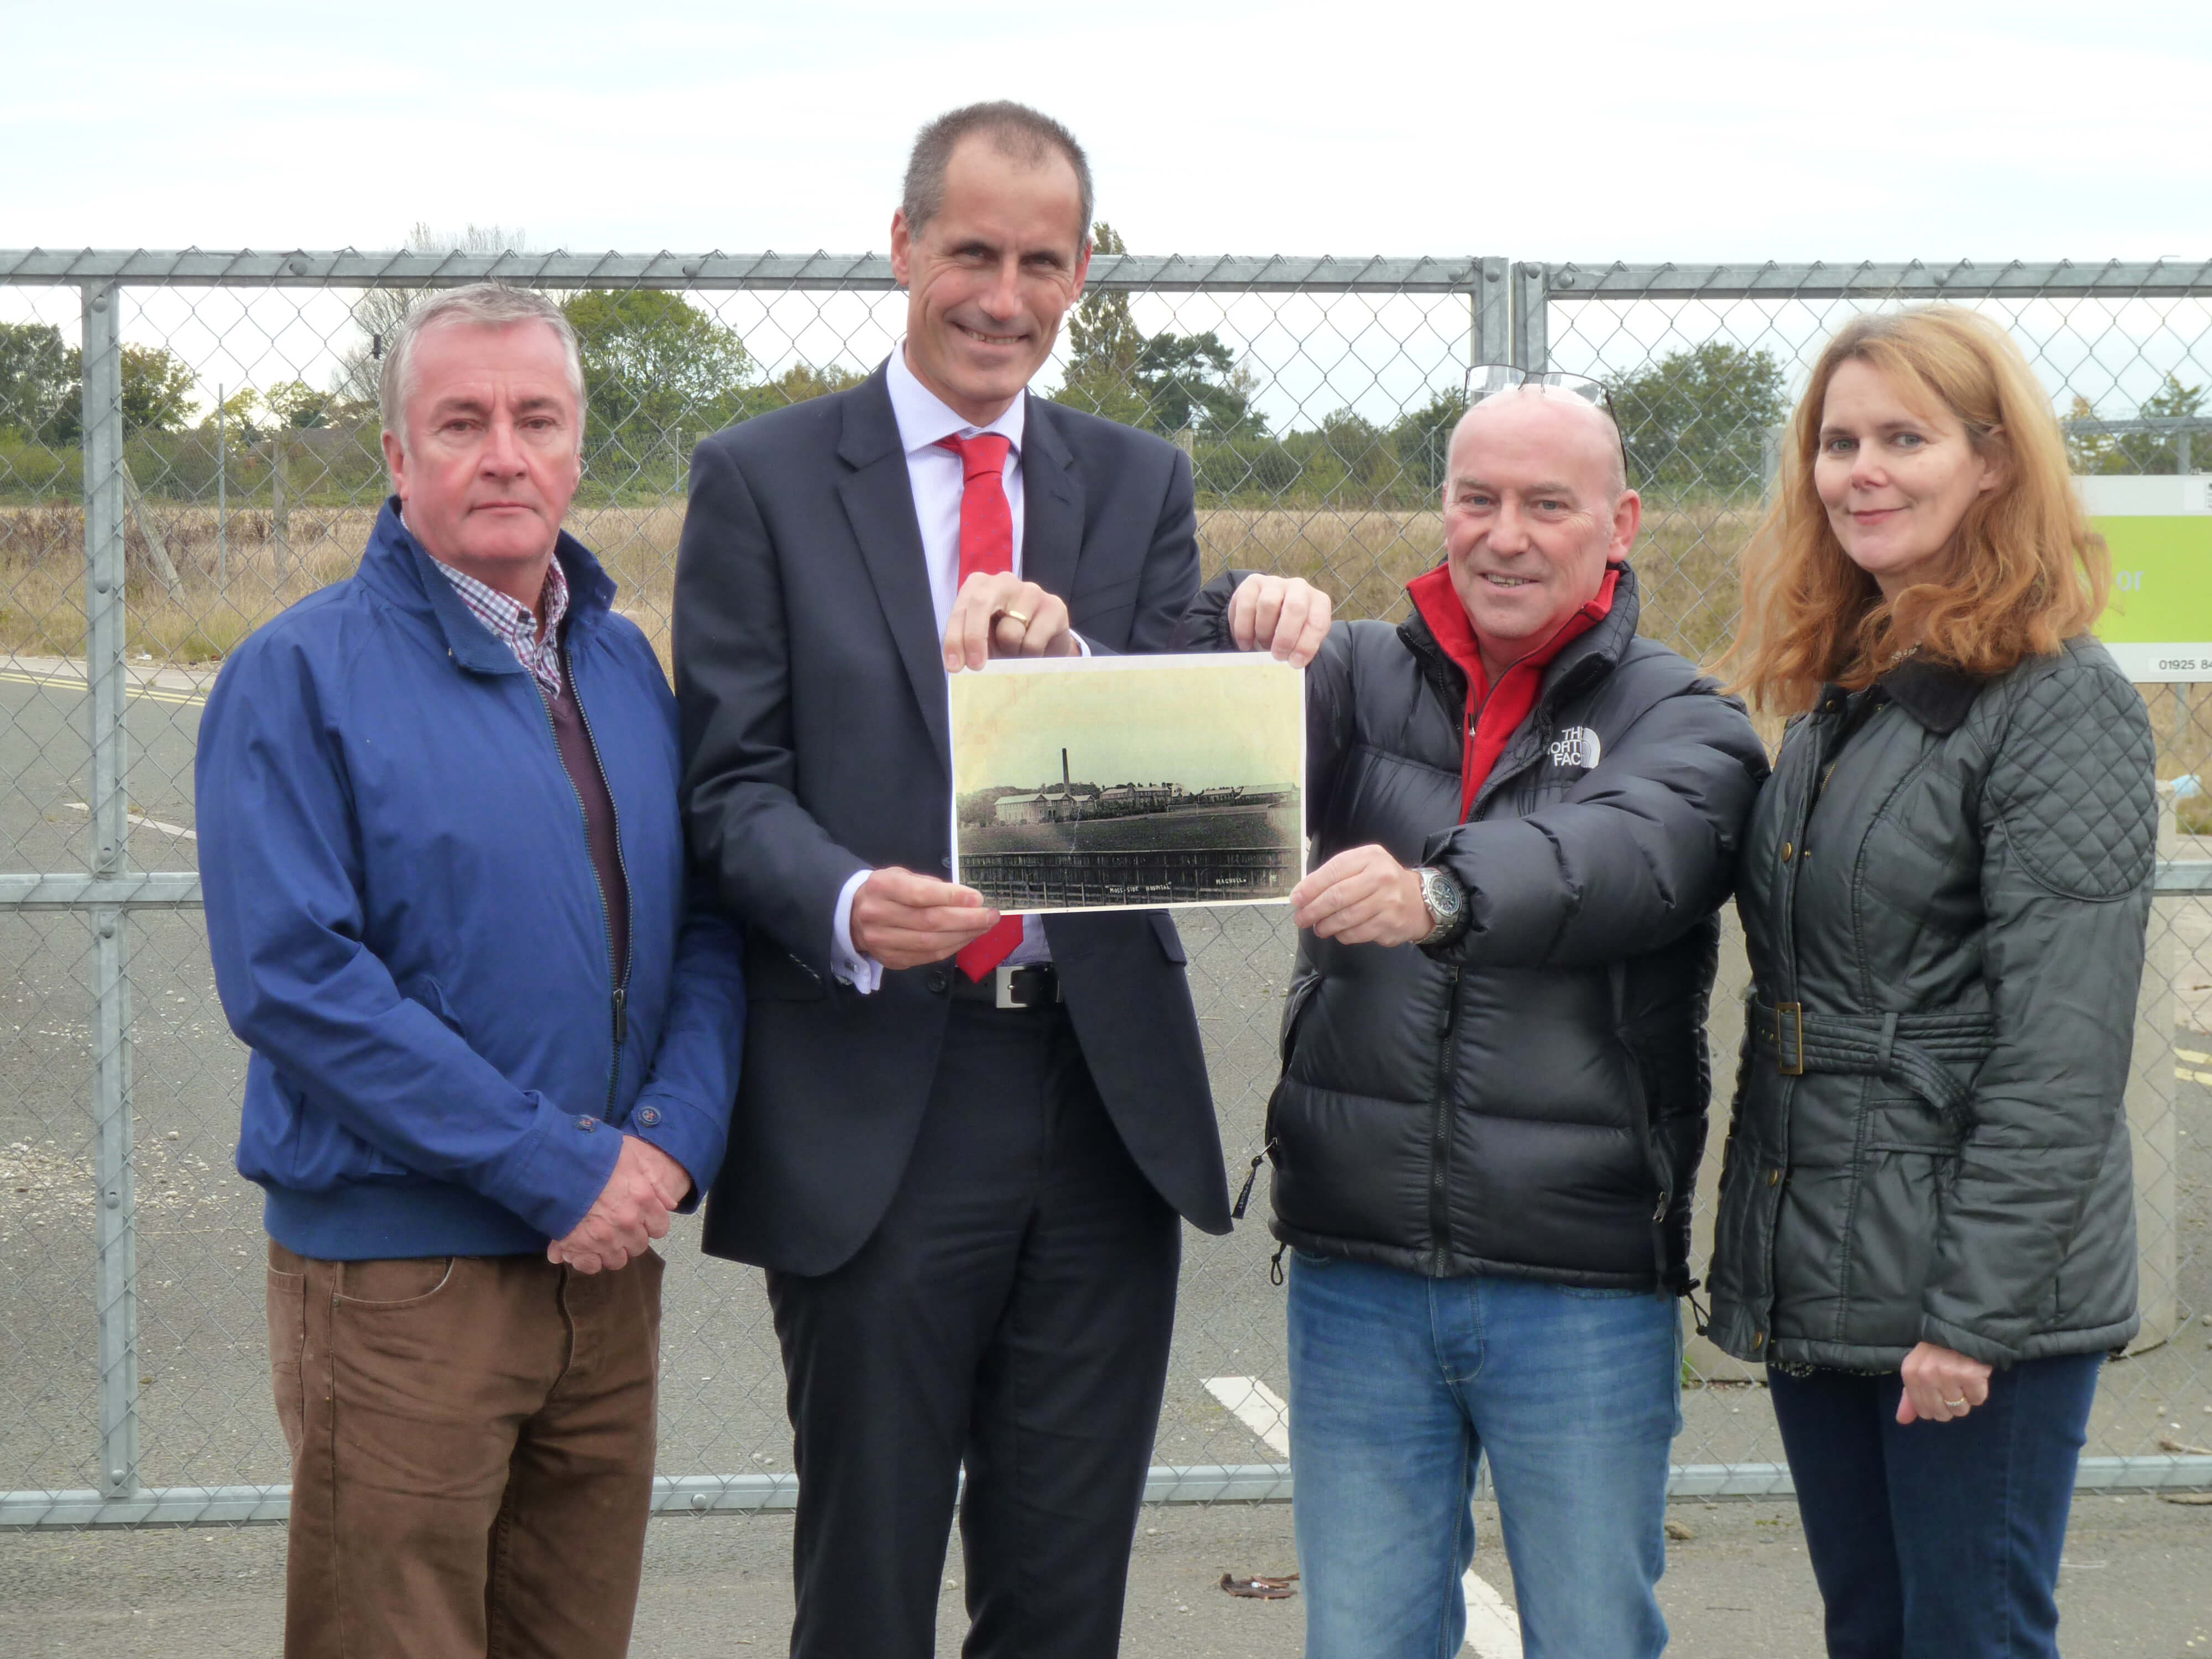 Former Moss Side Hospital nurse Ross Ferguson with Maghull Labour councillor Patrick McKinley and Lynn Gatherer and MP Bill Esterson.